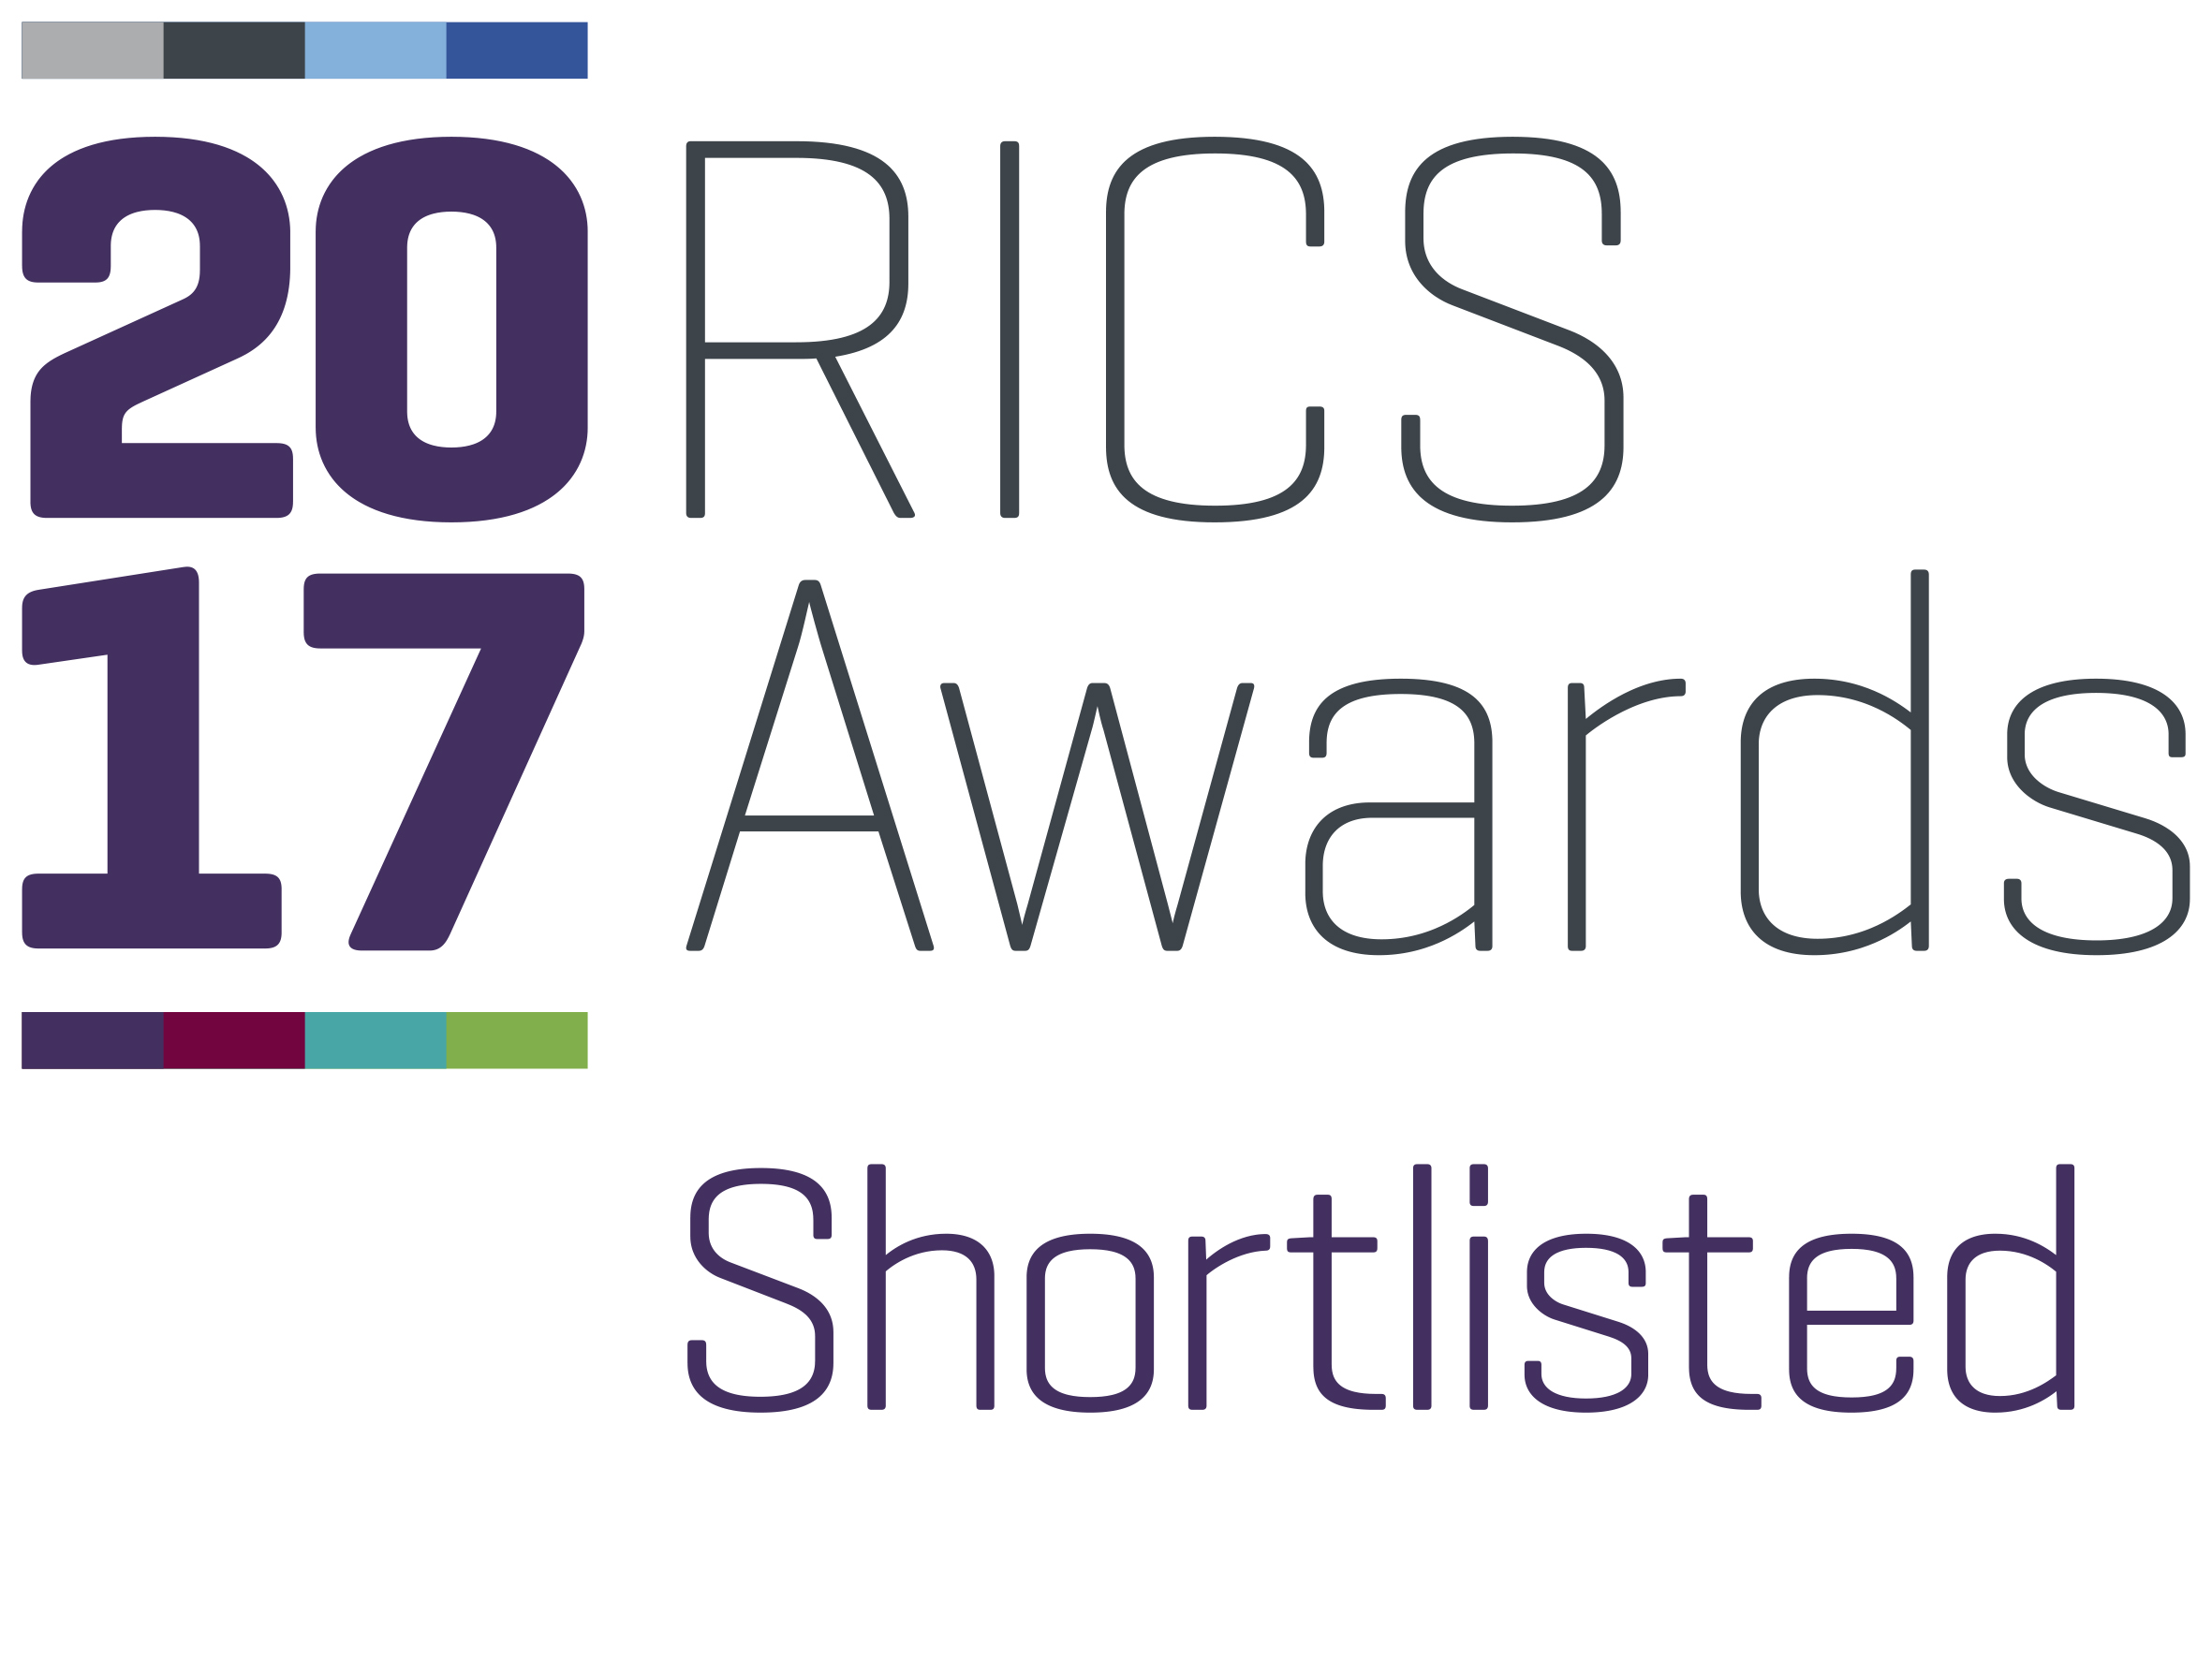 Container City™ building shortlisted for RICS Award 2017